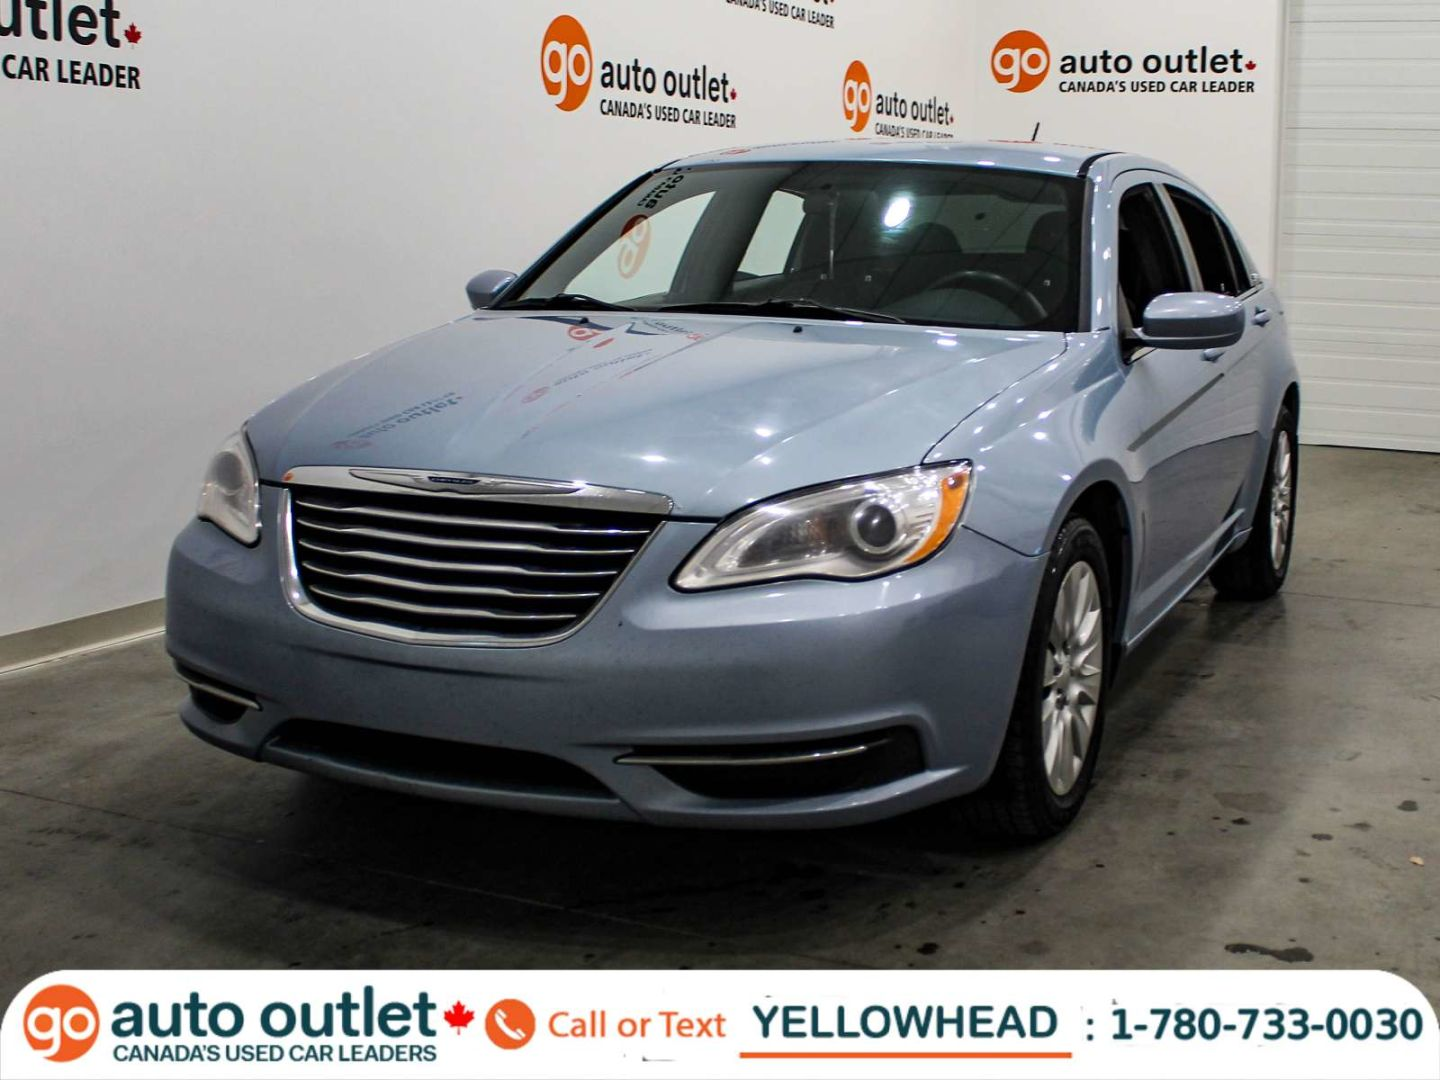 2013 Chrysler 200 LX for sale in Edmonton, Alberta